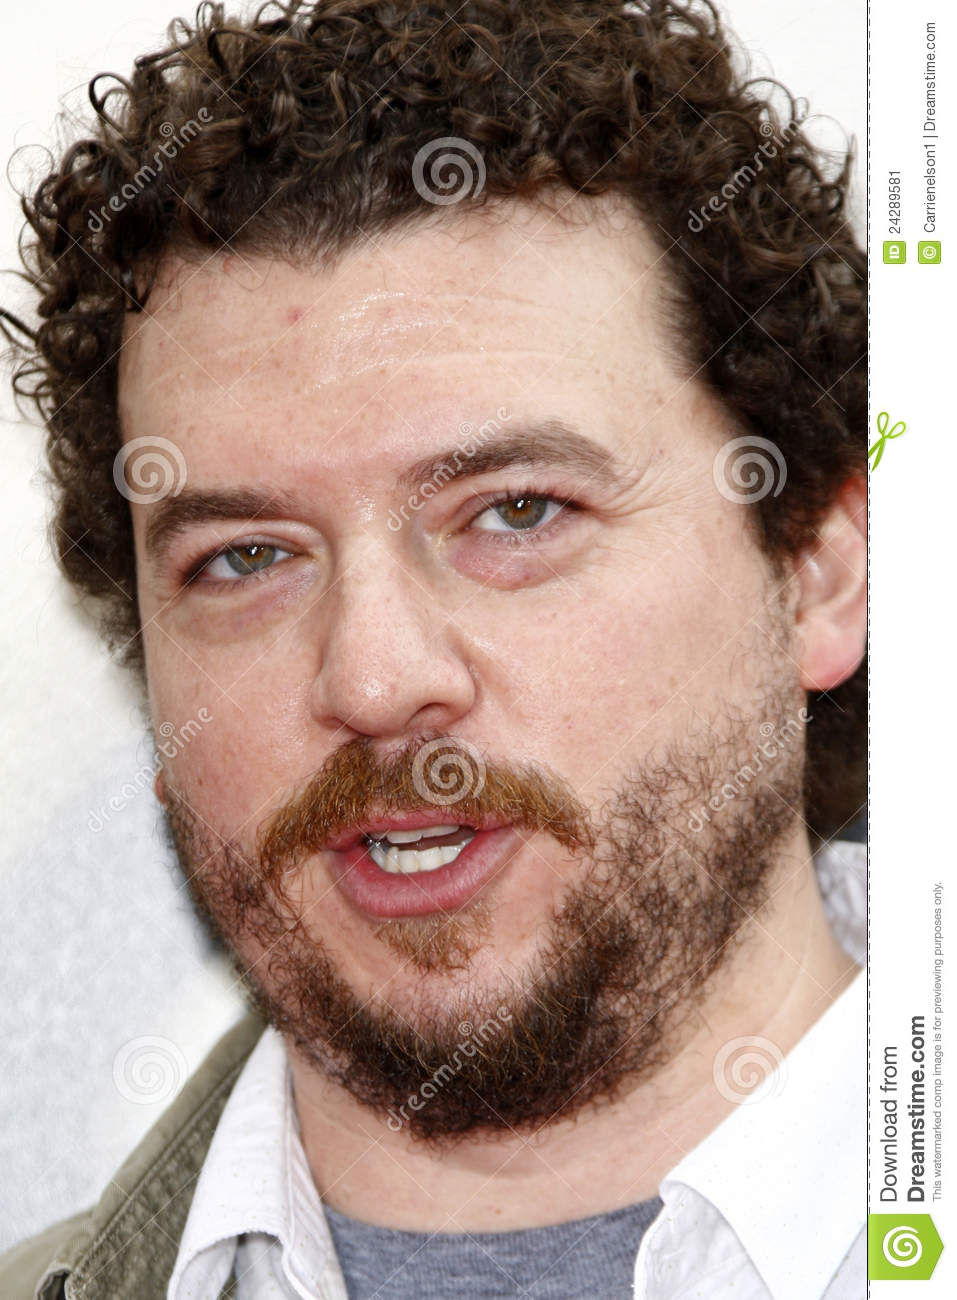 danny mcbride twitterdanny mcbride height, danny mcbride artist, danny mcbride cannibal, danny mcbride eastbound and down, danny mcbride parents, danny mcbride young, danny mcbride gif, danny mcbride movies, danny mcbride height weight, danny mcbride twitter, danny mcbride nick swardson, danny mcbride pineapple express, danny mcbride instagram, danny mcbride alien covenant, danny mcbride films, danny mcbride filmleri, danny mcbride all movies, danny mcbride best movies, danny mcbride official twitter